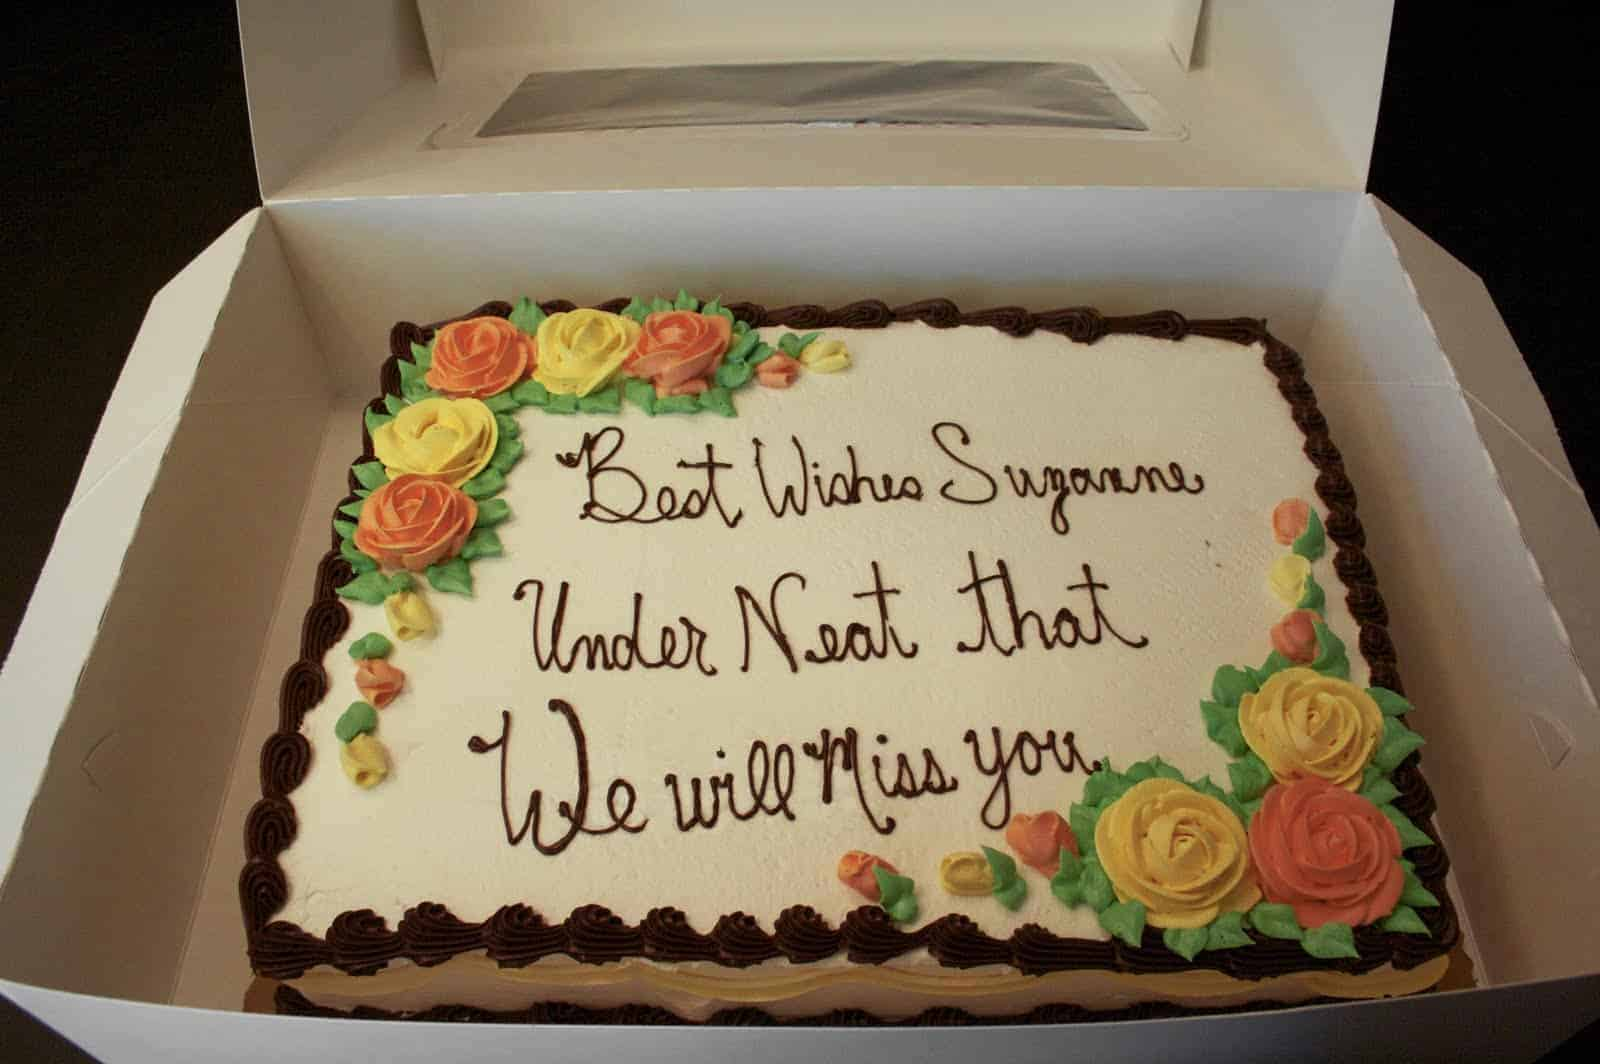 "Cake decorated with, ""Best Wishes Suzanne, Under Neat that, We will miss you"""